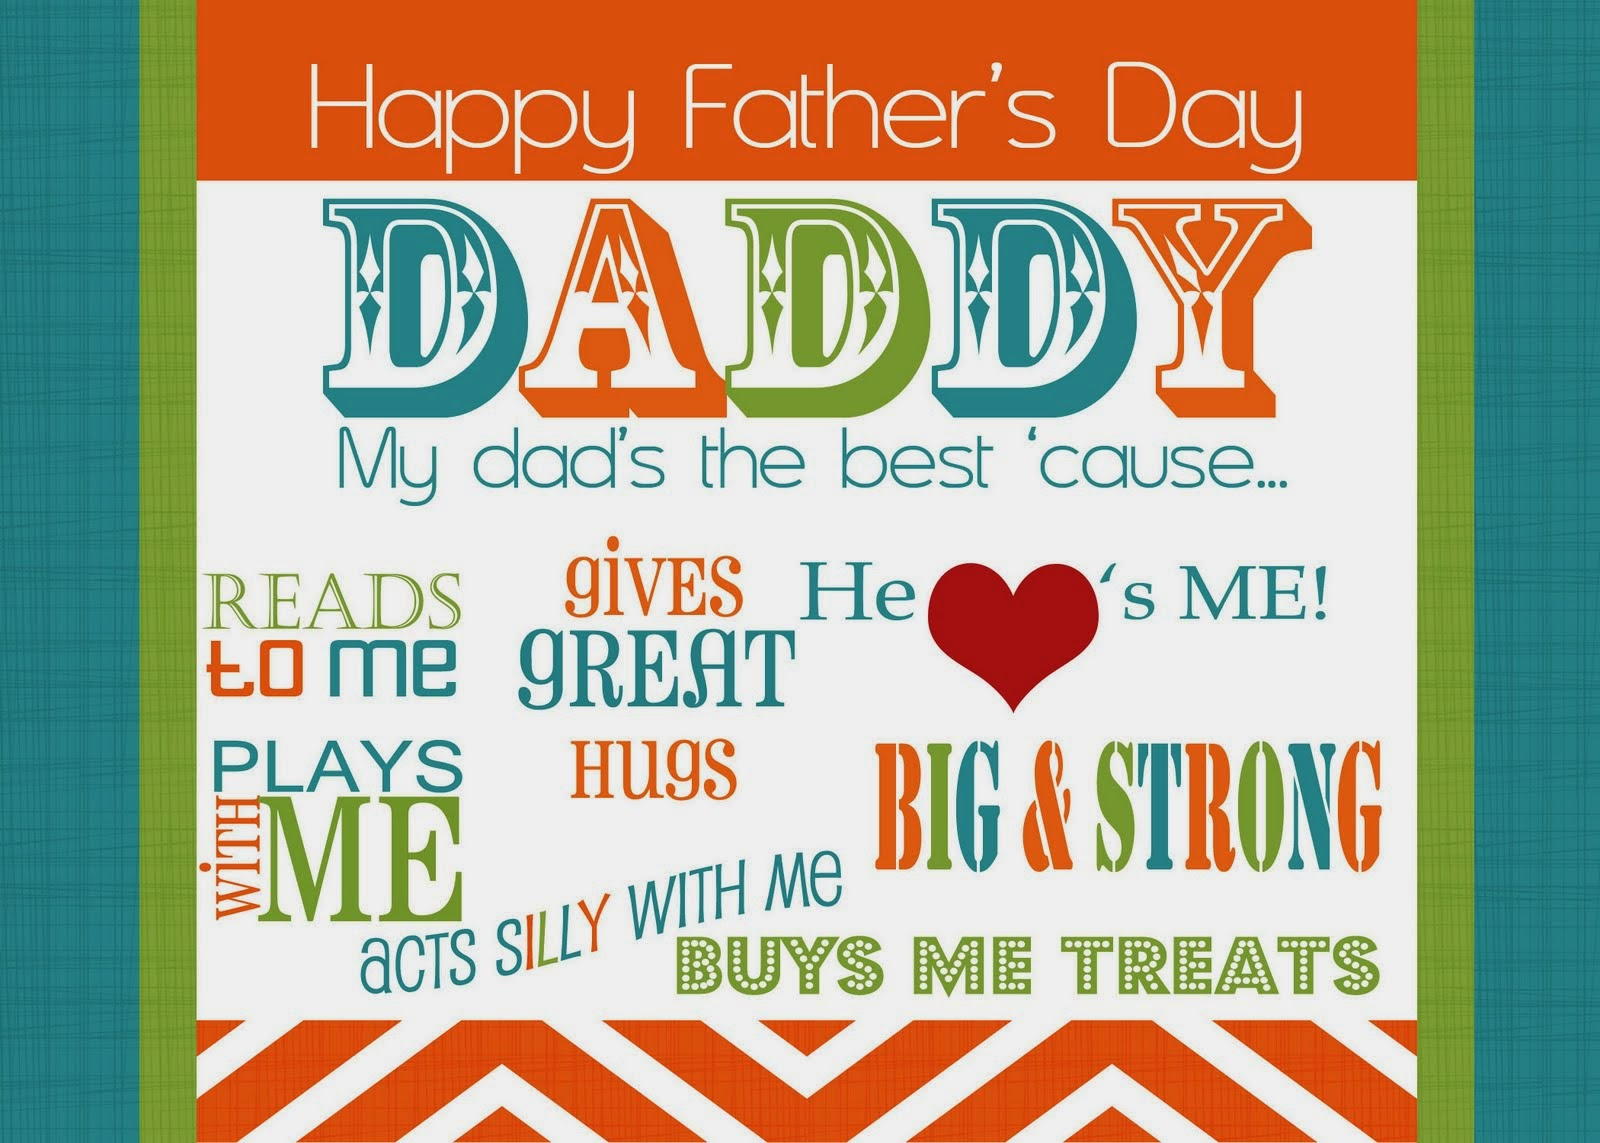 Happy Fathers Day 2014 Diva Likes